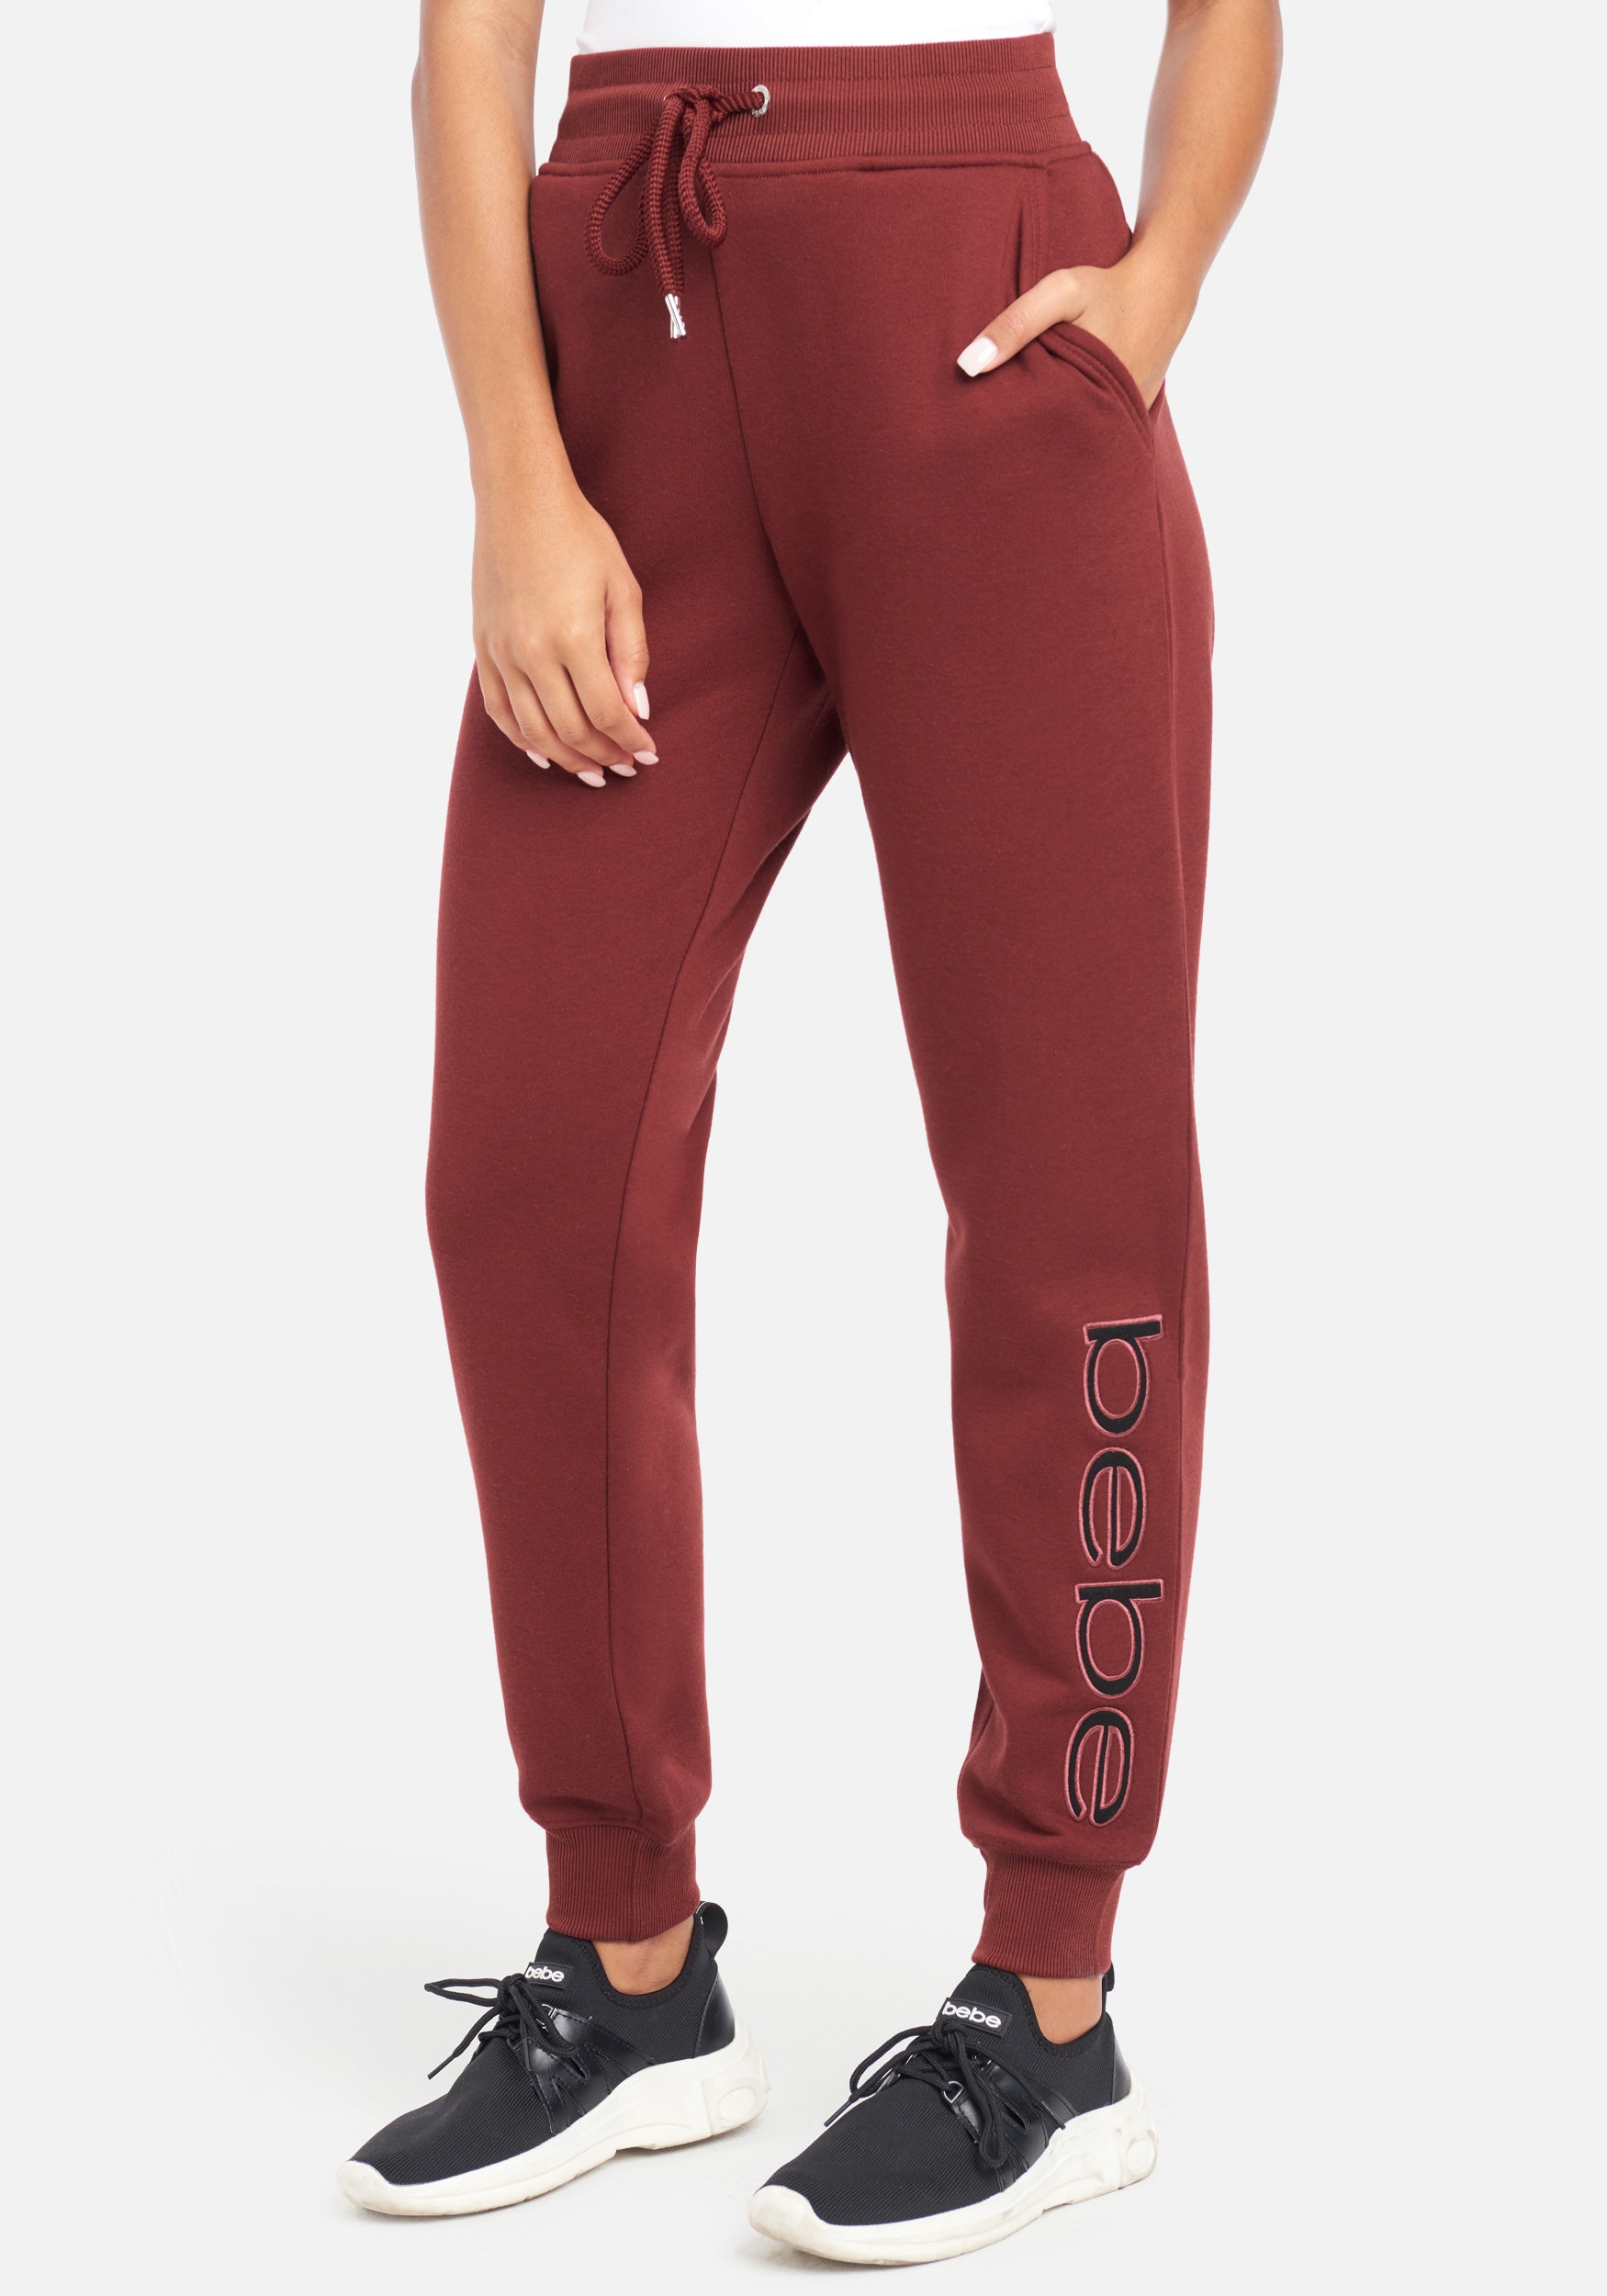 Women's Bebe Sport Sherpa Logo Patch Jogger Pant, Size Small in Wine